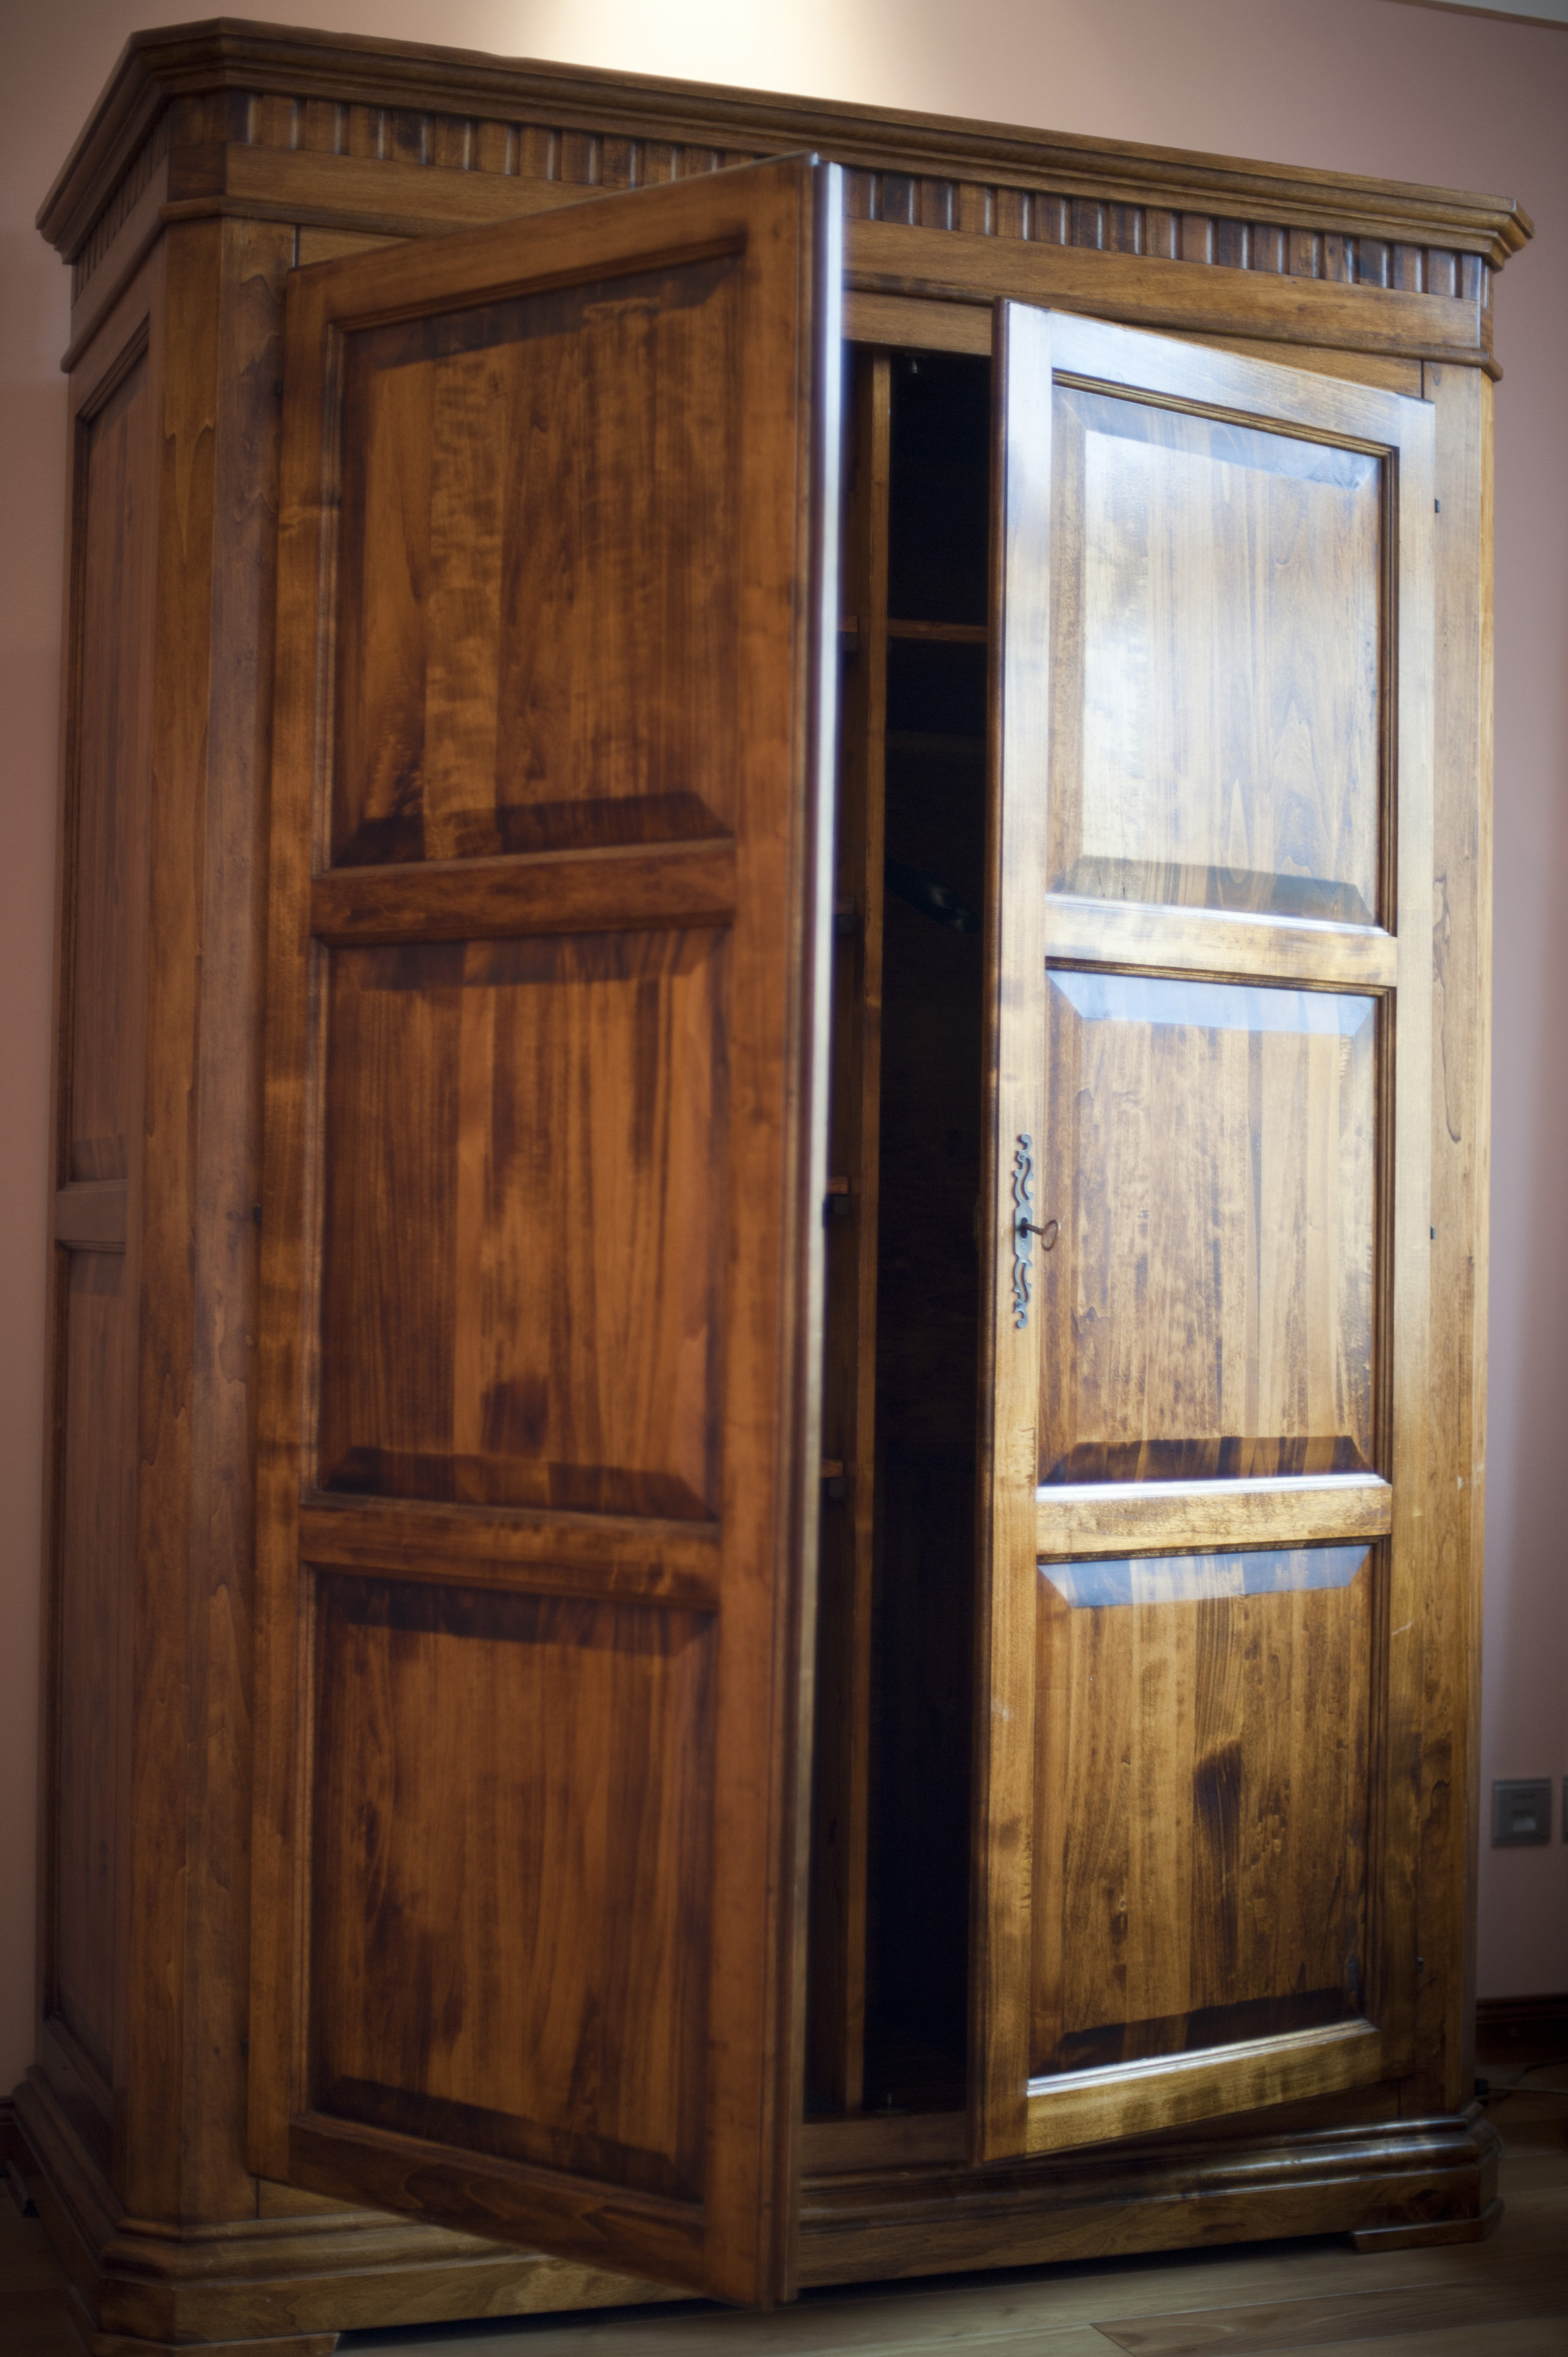 Rustic large wooden wardrobe or armoire with the doors ajar to reveal ...